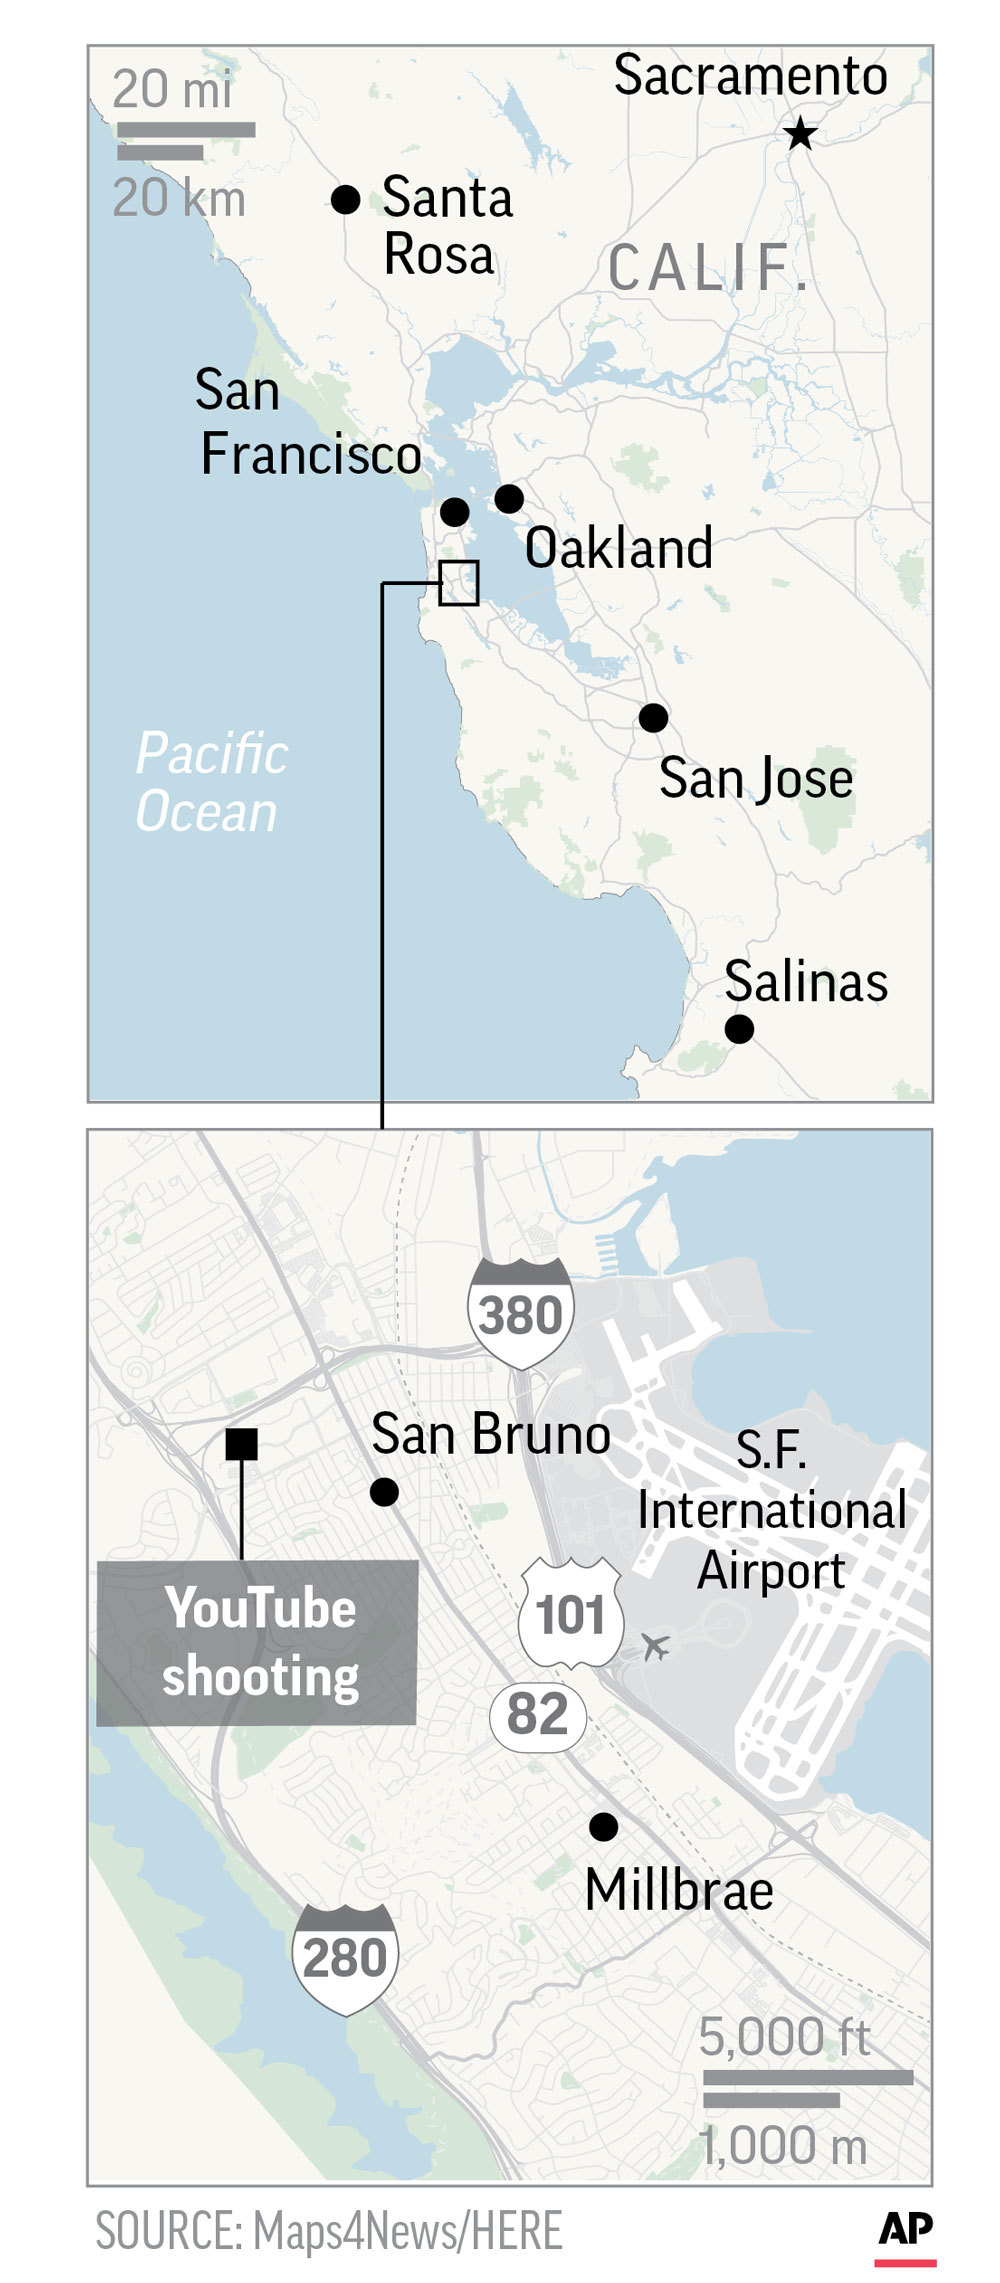 Graphic shows location of YouTube shooting in San Bruno, California; 1c x 4 1/4 inches; 46.5 mm x 107 mm;